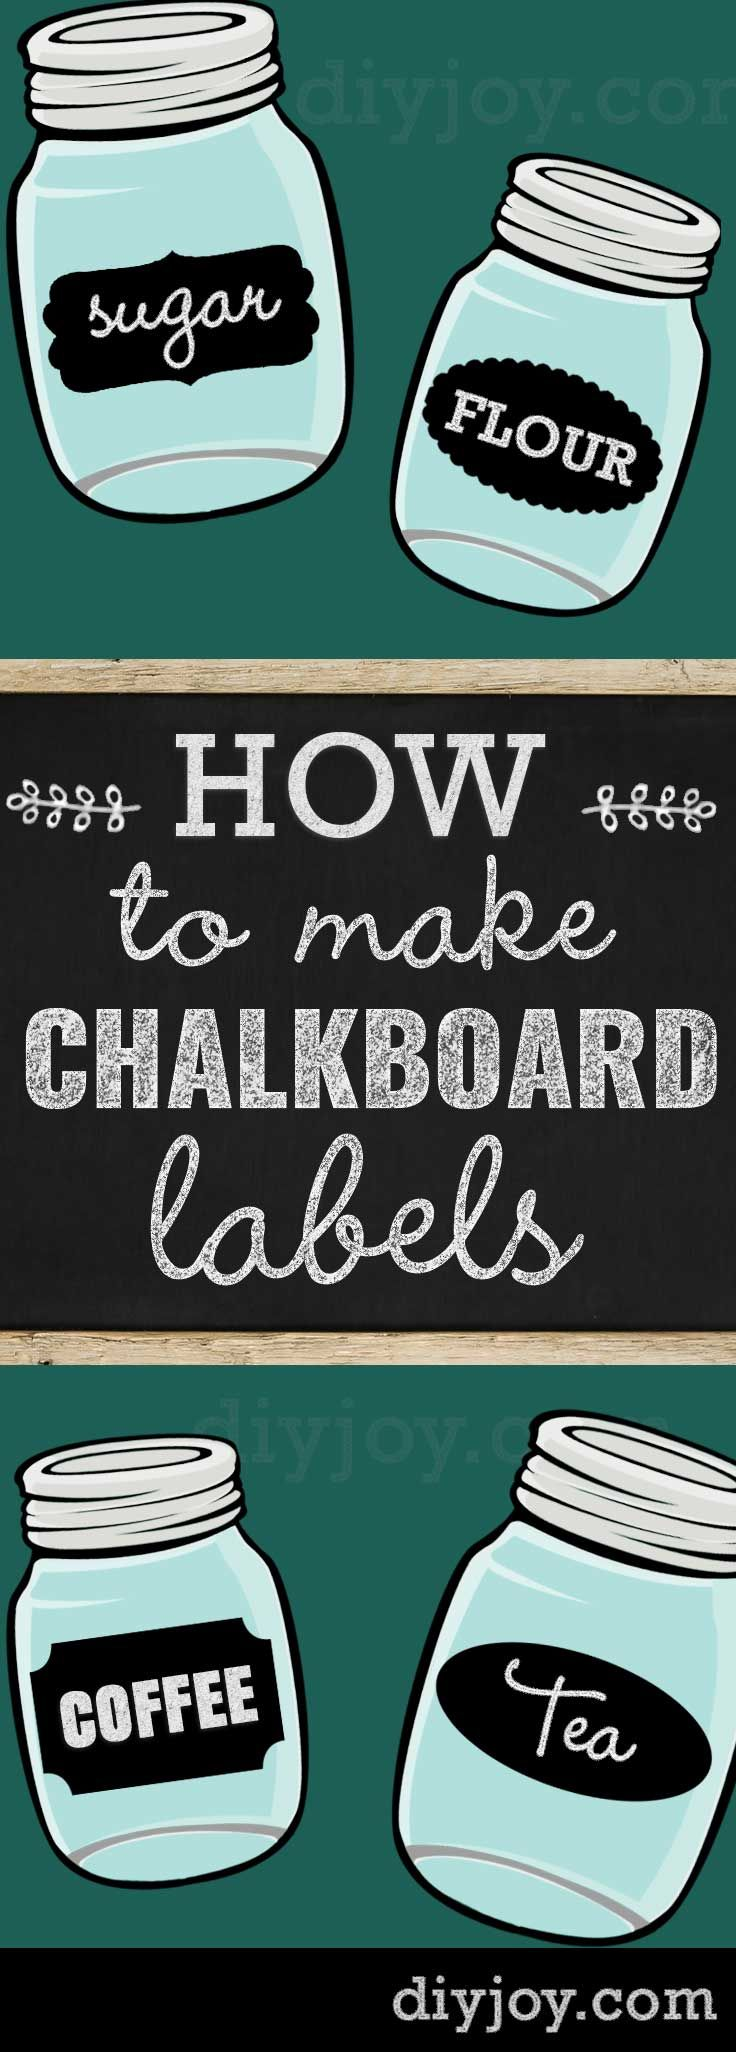 How To Make Chalkboard Labels | Fun Mason Jar Crafts and Ideas - DIY Chalkboard Paint Labels Tutorial for Cool Rustic Home Decor Projects and Crafts